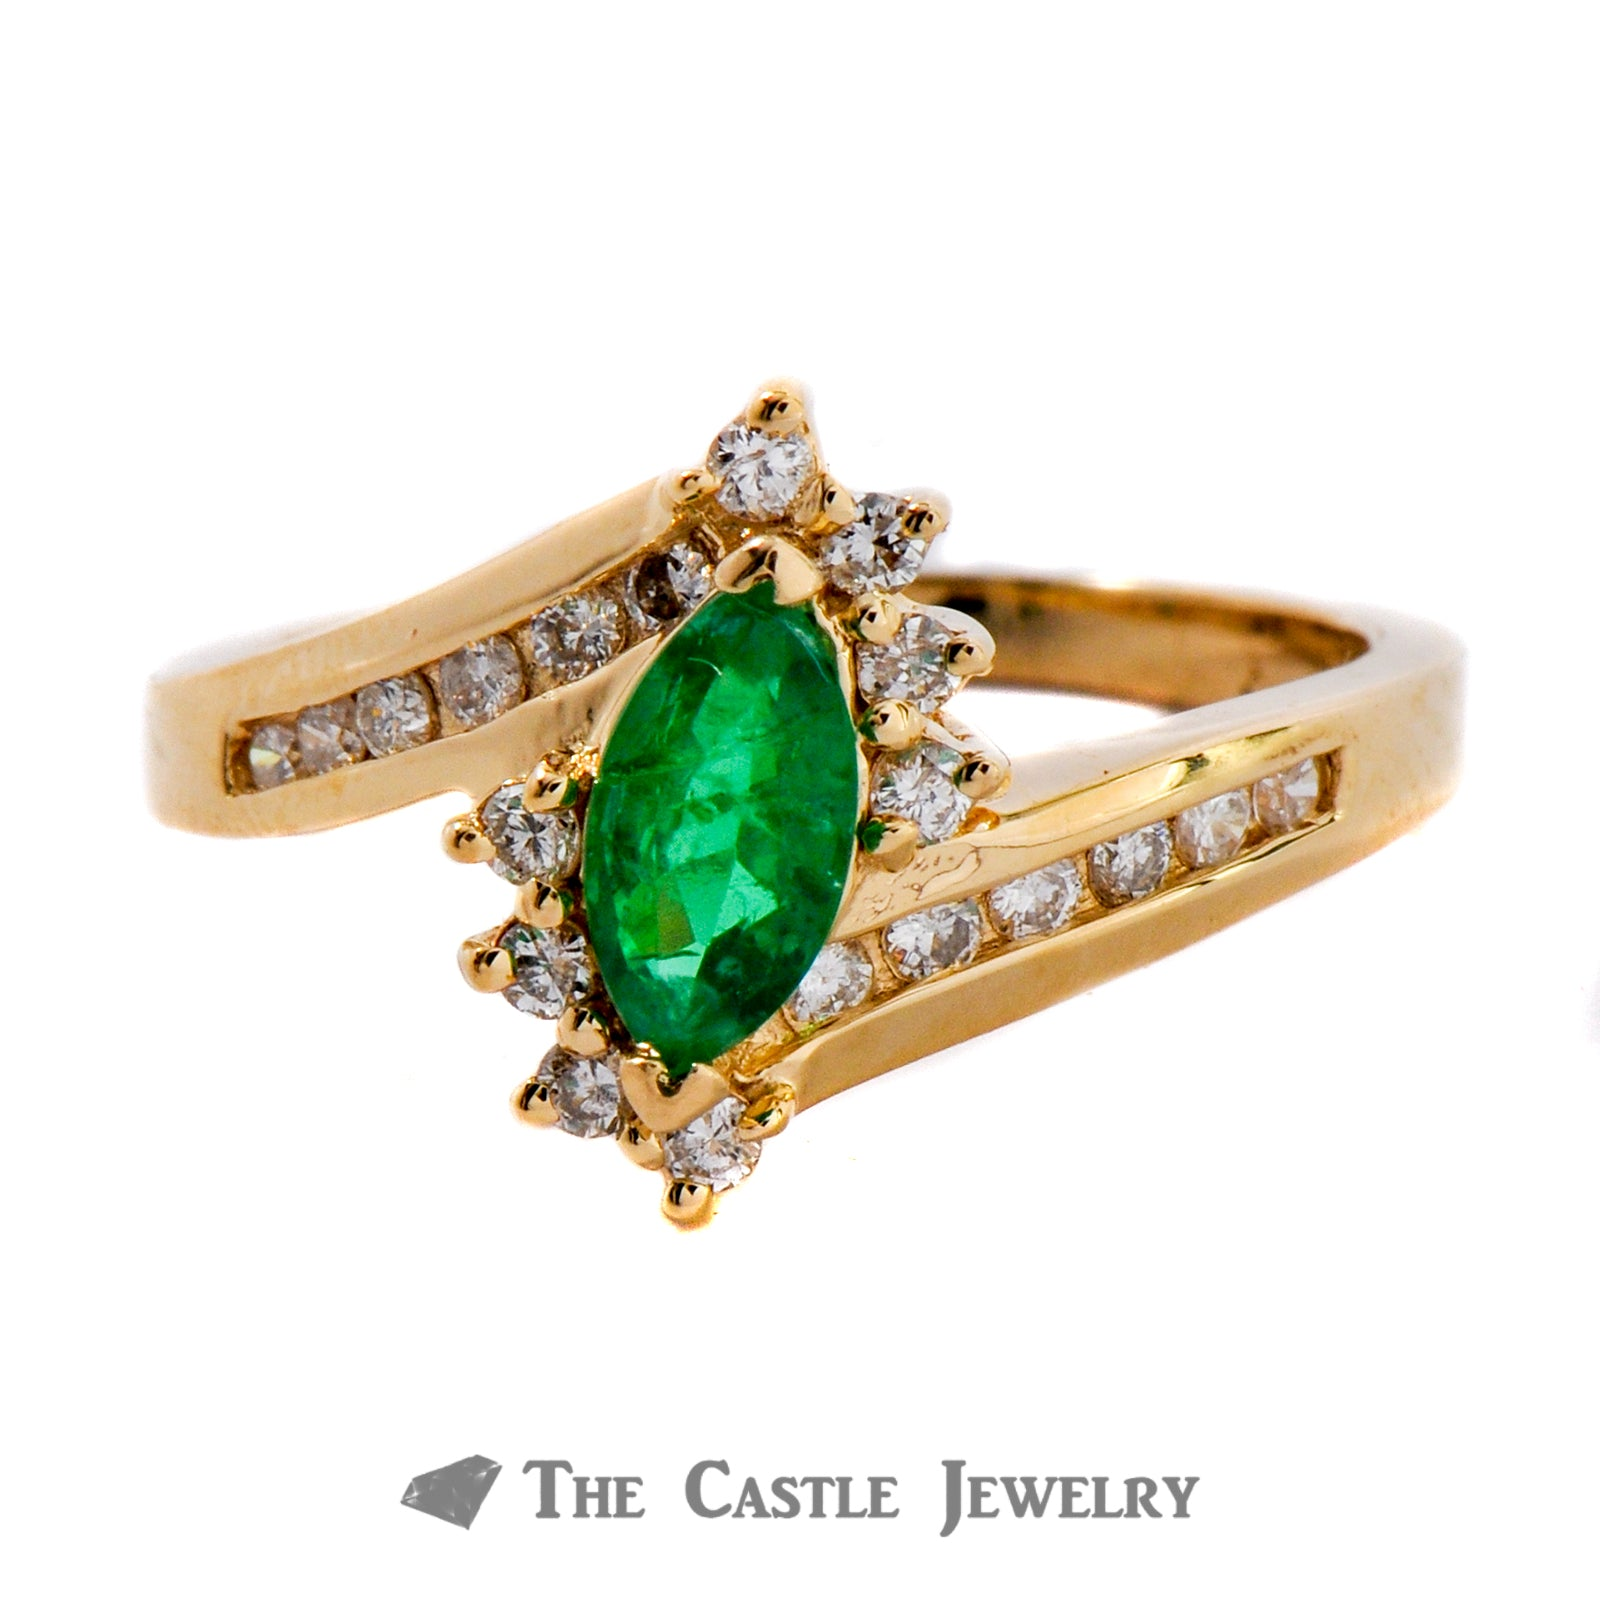 Genuine Marquise Cut Emerald And Diamond Ring In 14K Yellow Gold